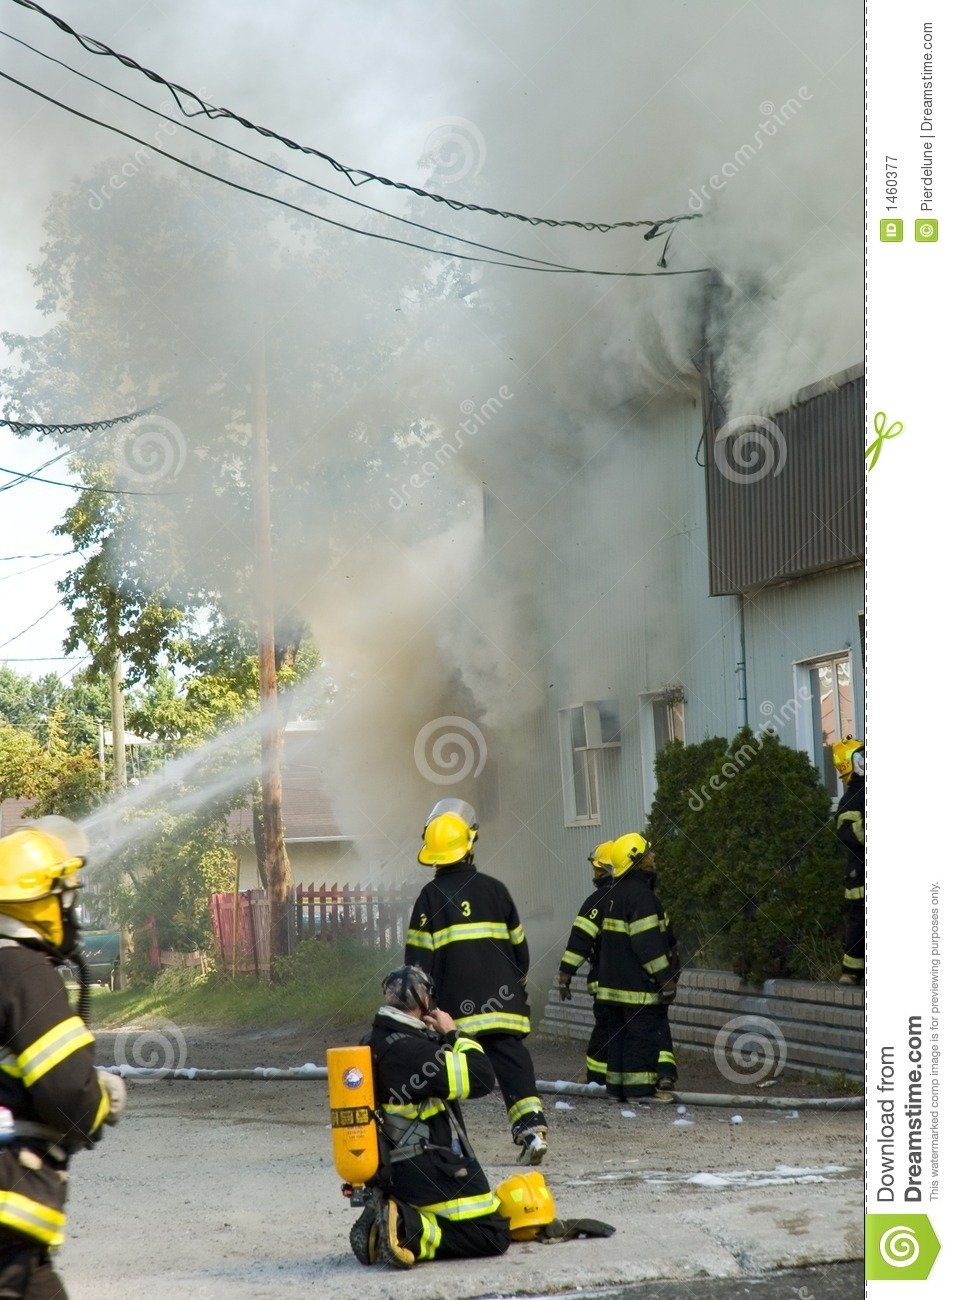 Firemen on the move